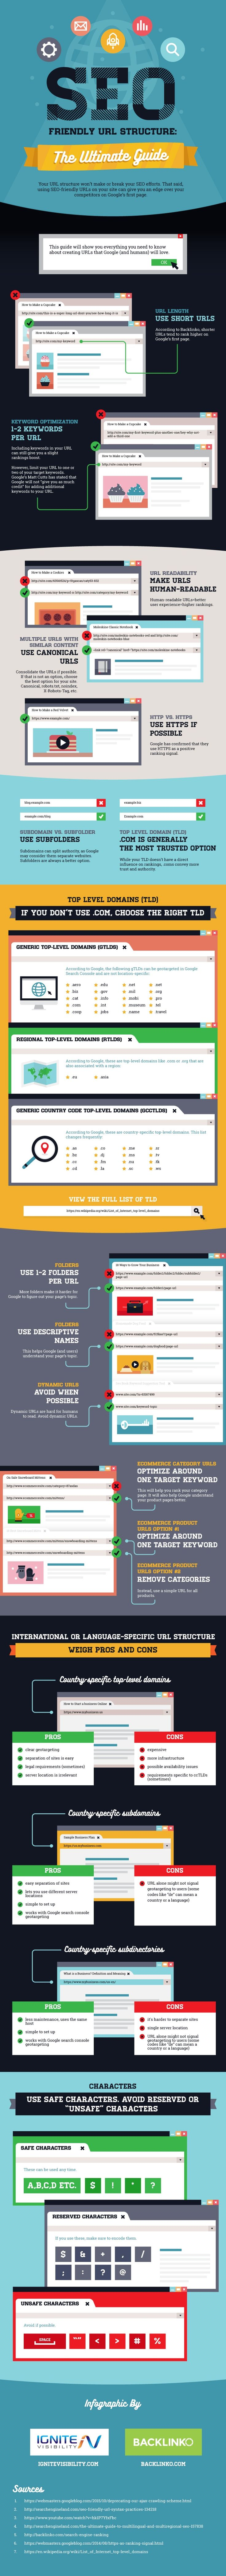 SEO-URL-Structure-infographic.jpg